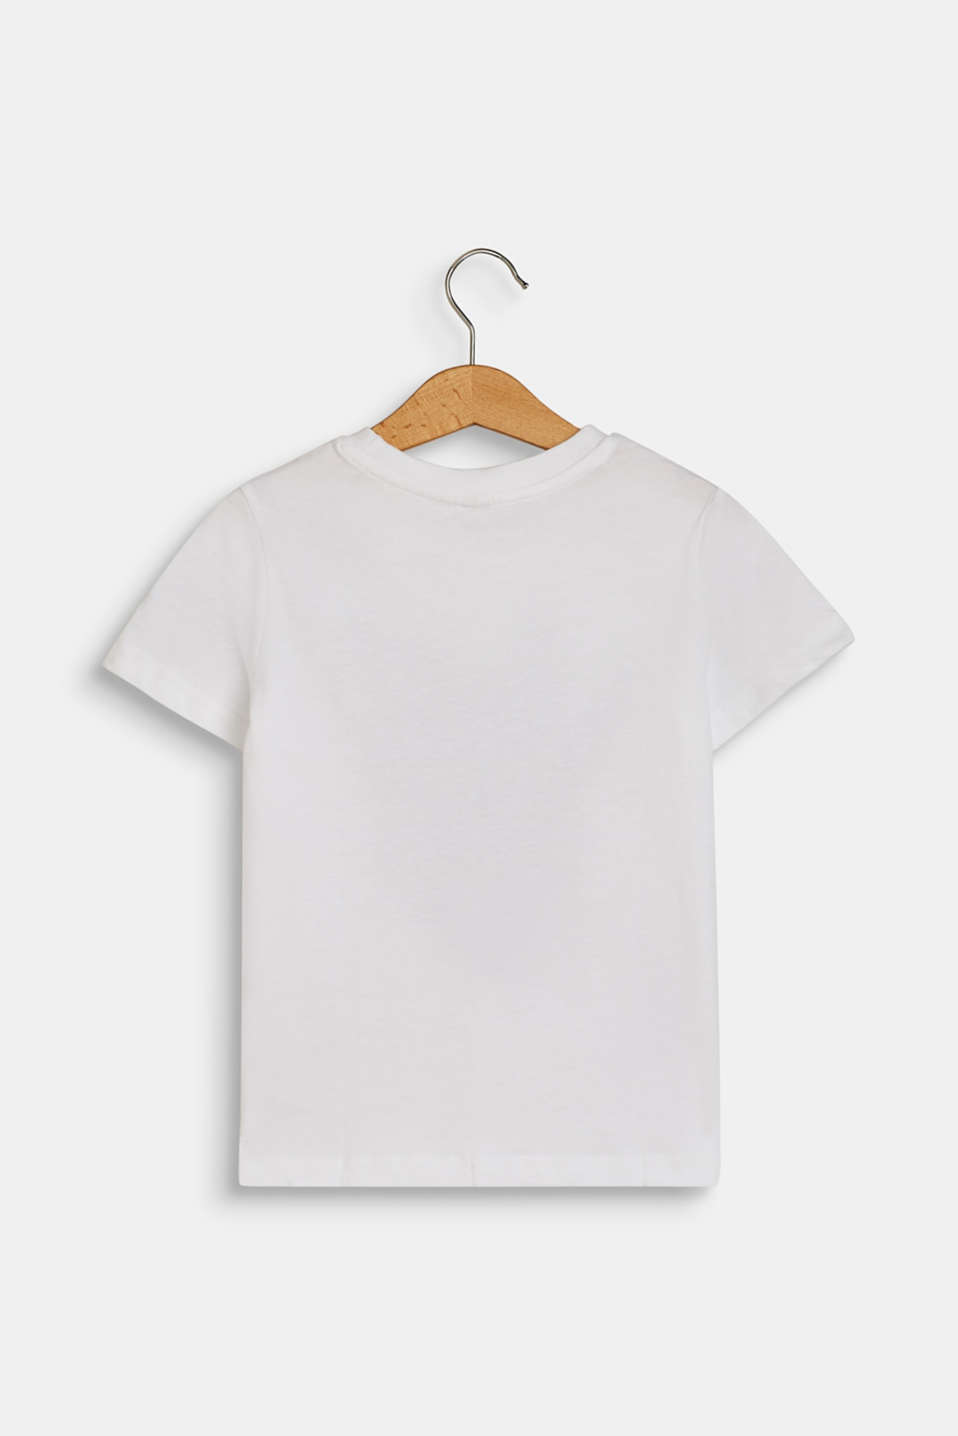 T-shirt with rhino print, 100% cotton, WHITE, detail image number 1